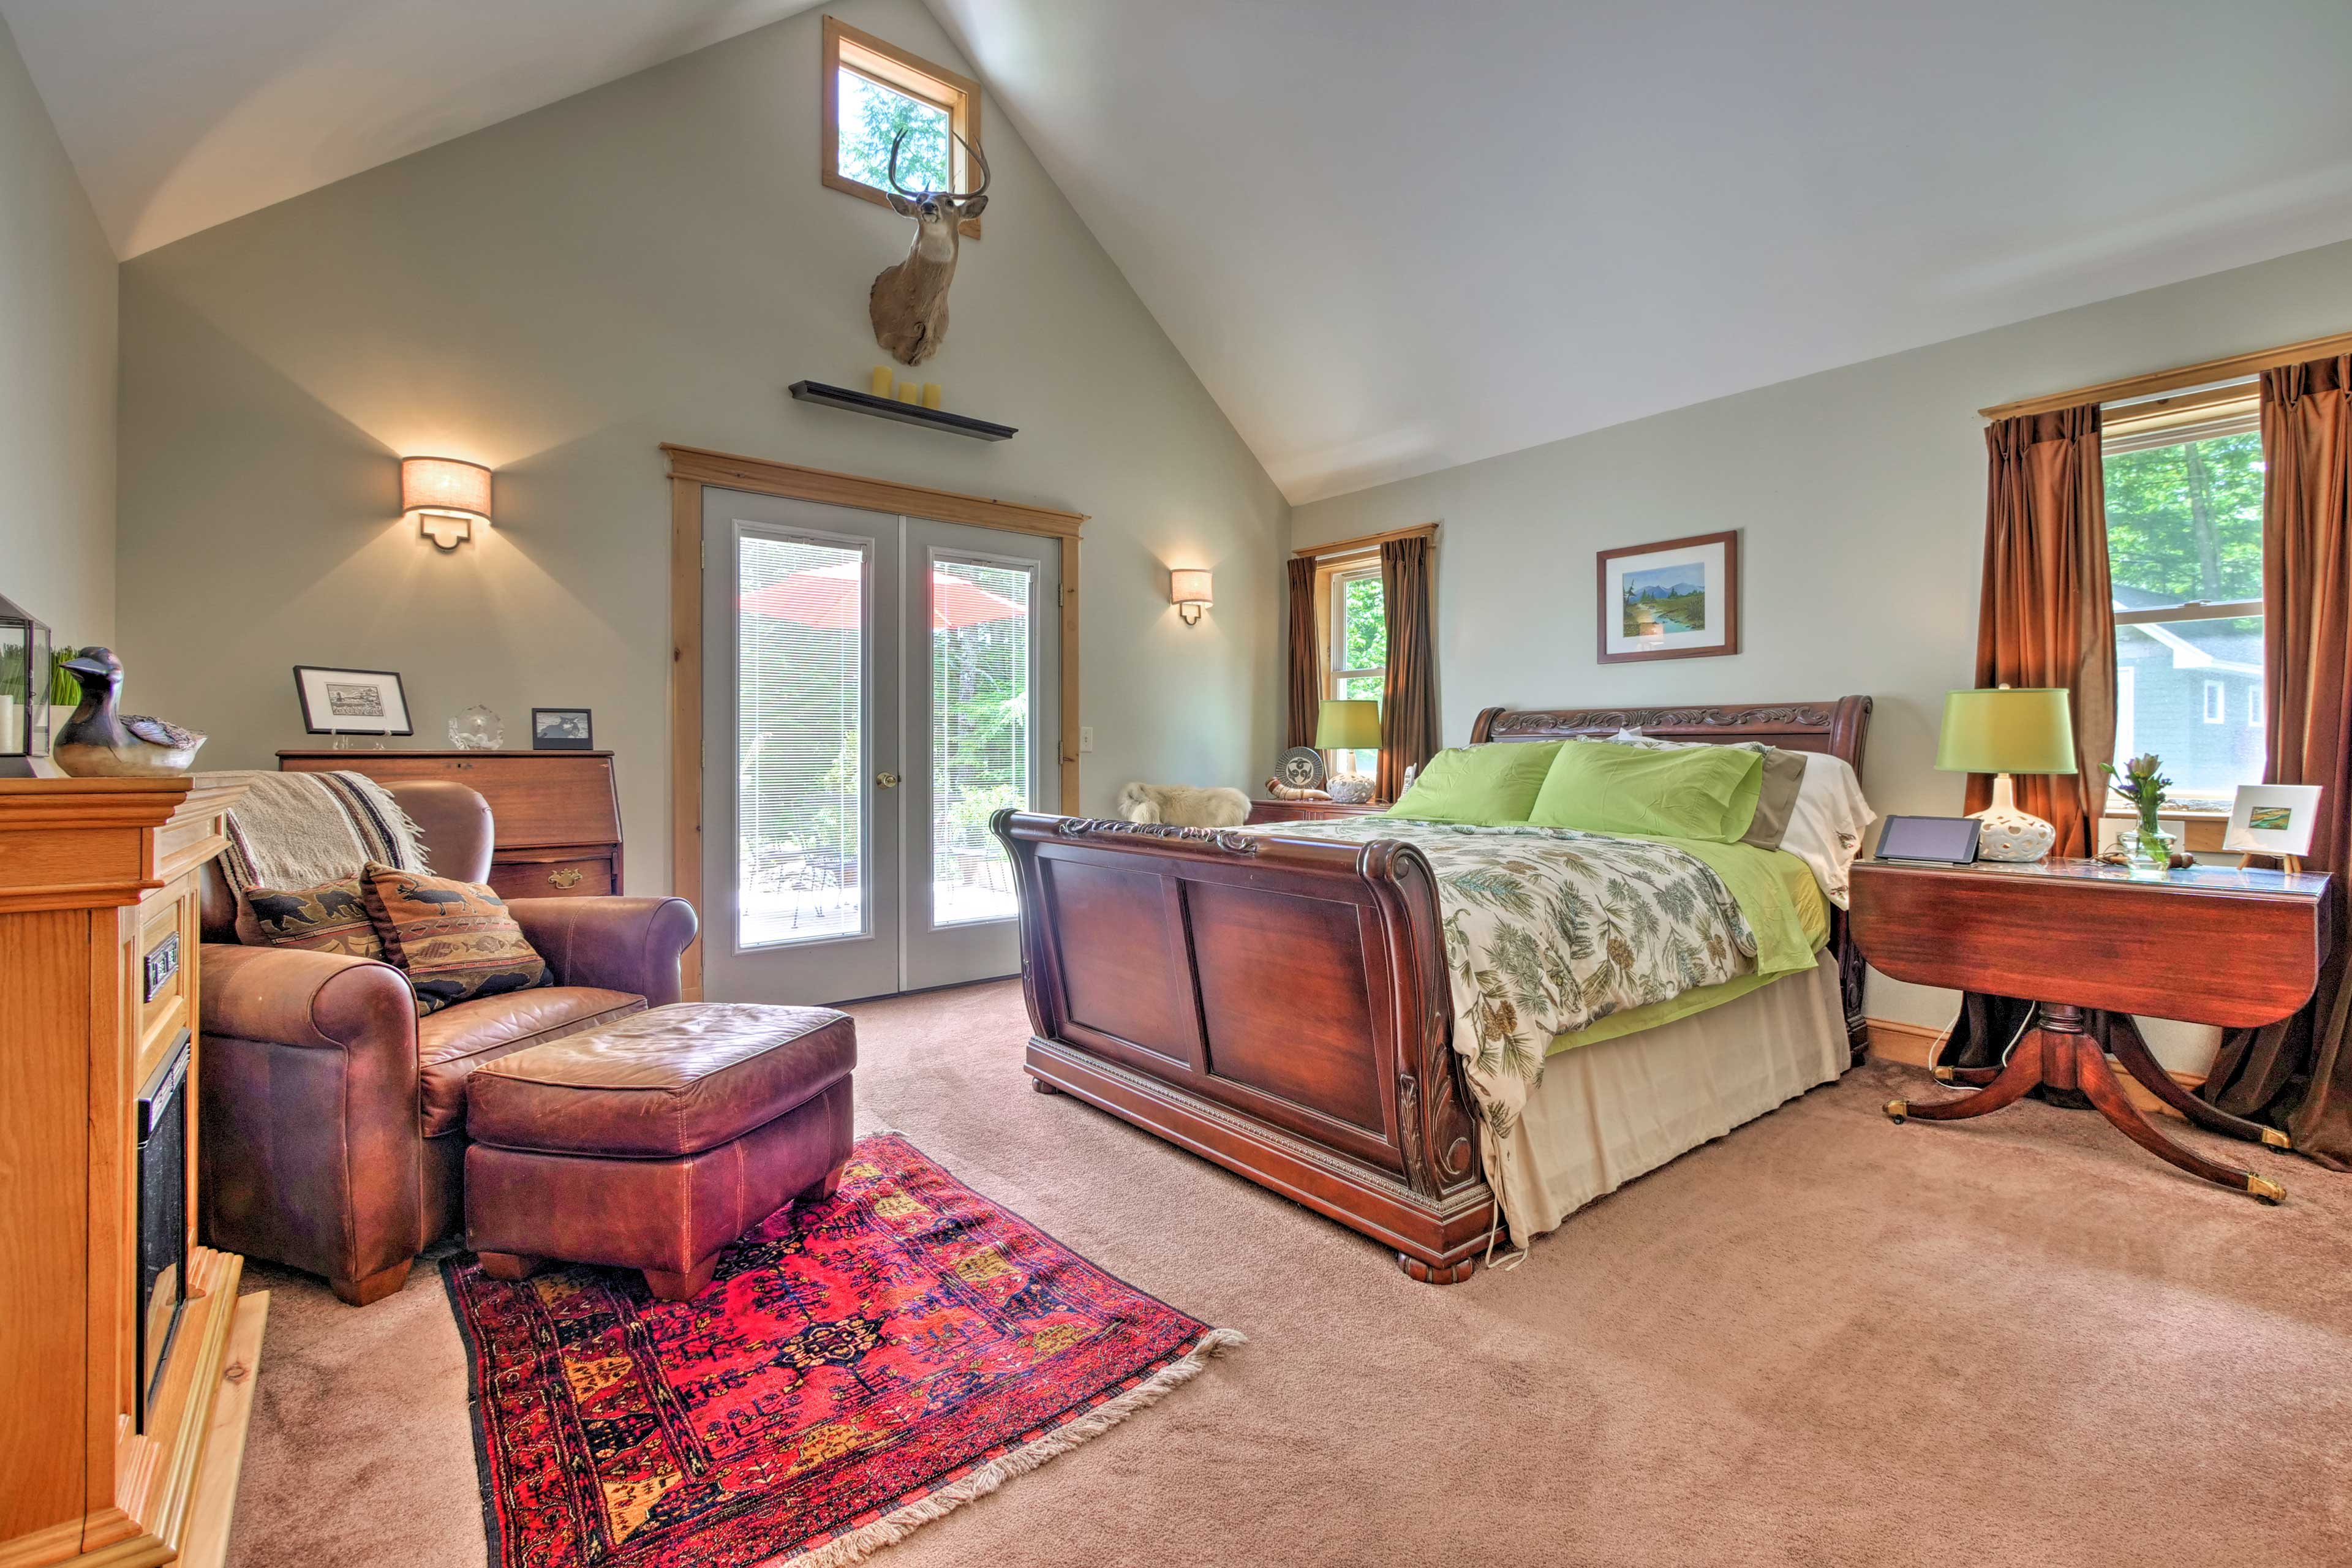 Cathedral ceilings welcome you into the master bedroom with a queen bed.